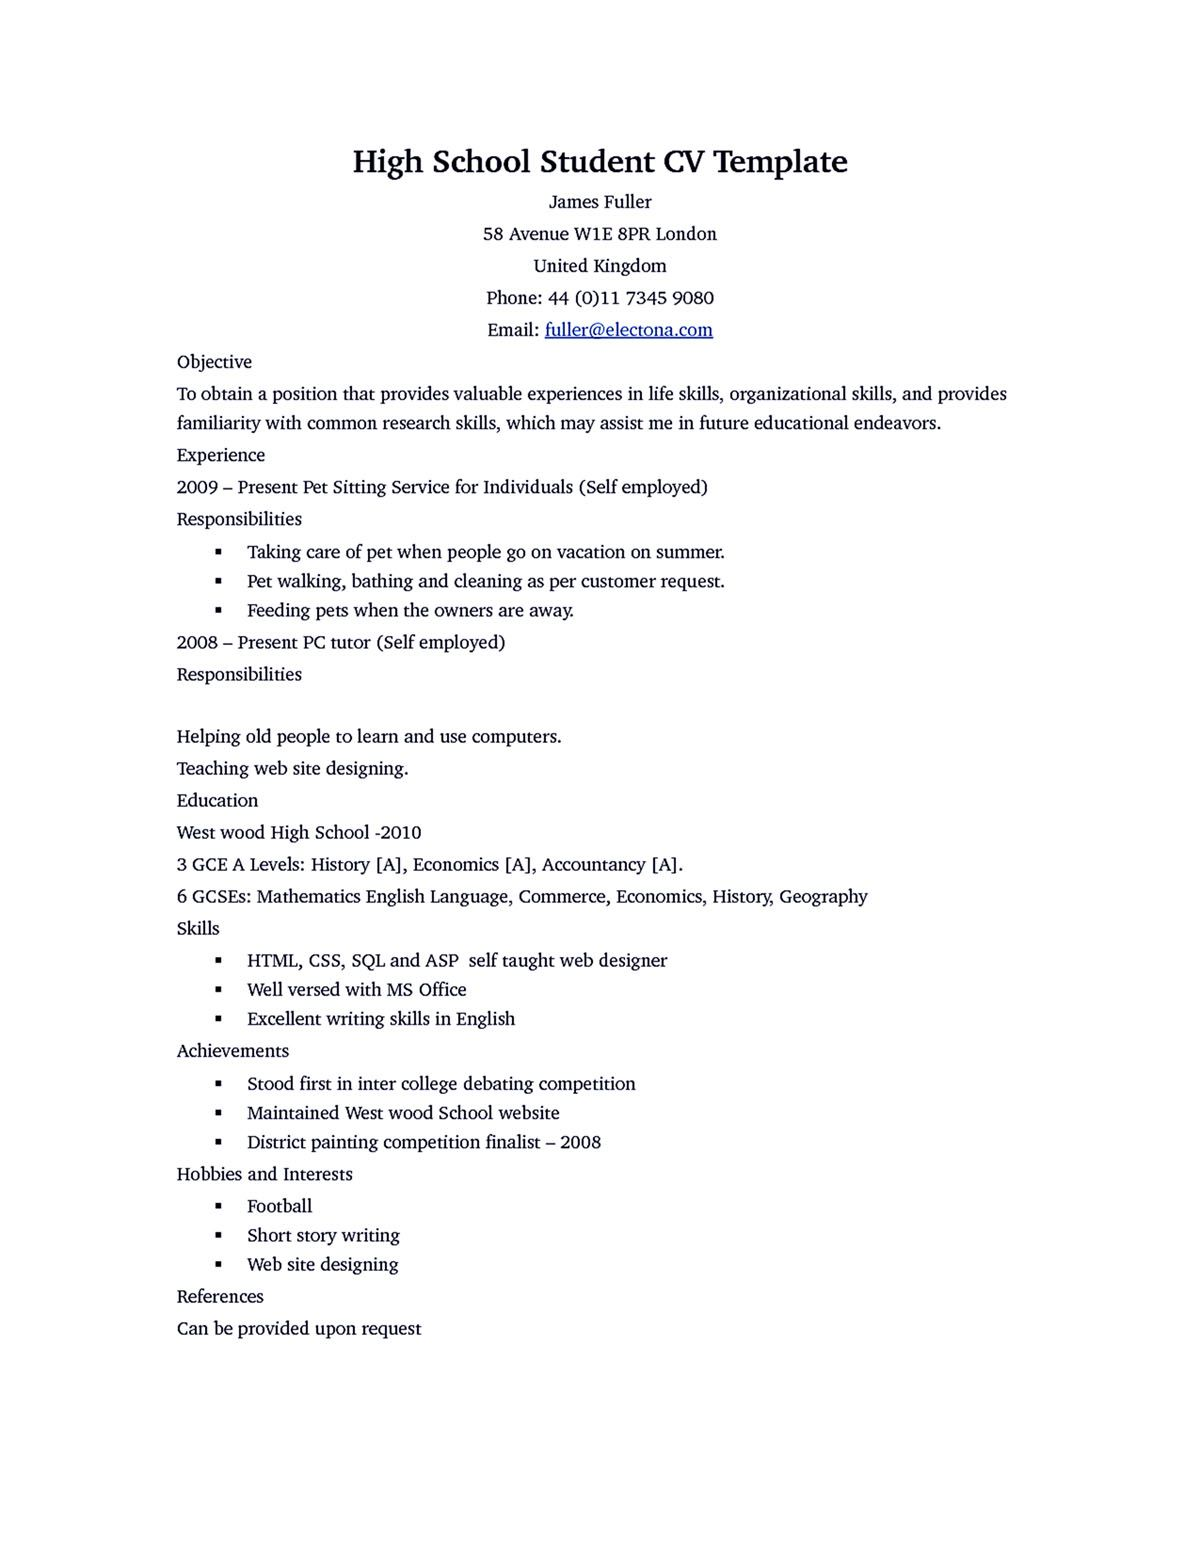 Academic Resume Academic Resume Template Shows You How The Layout Of An Academic